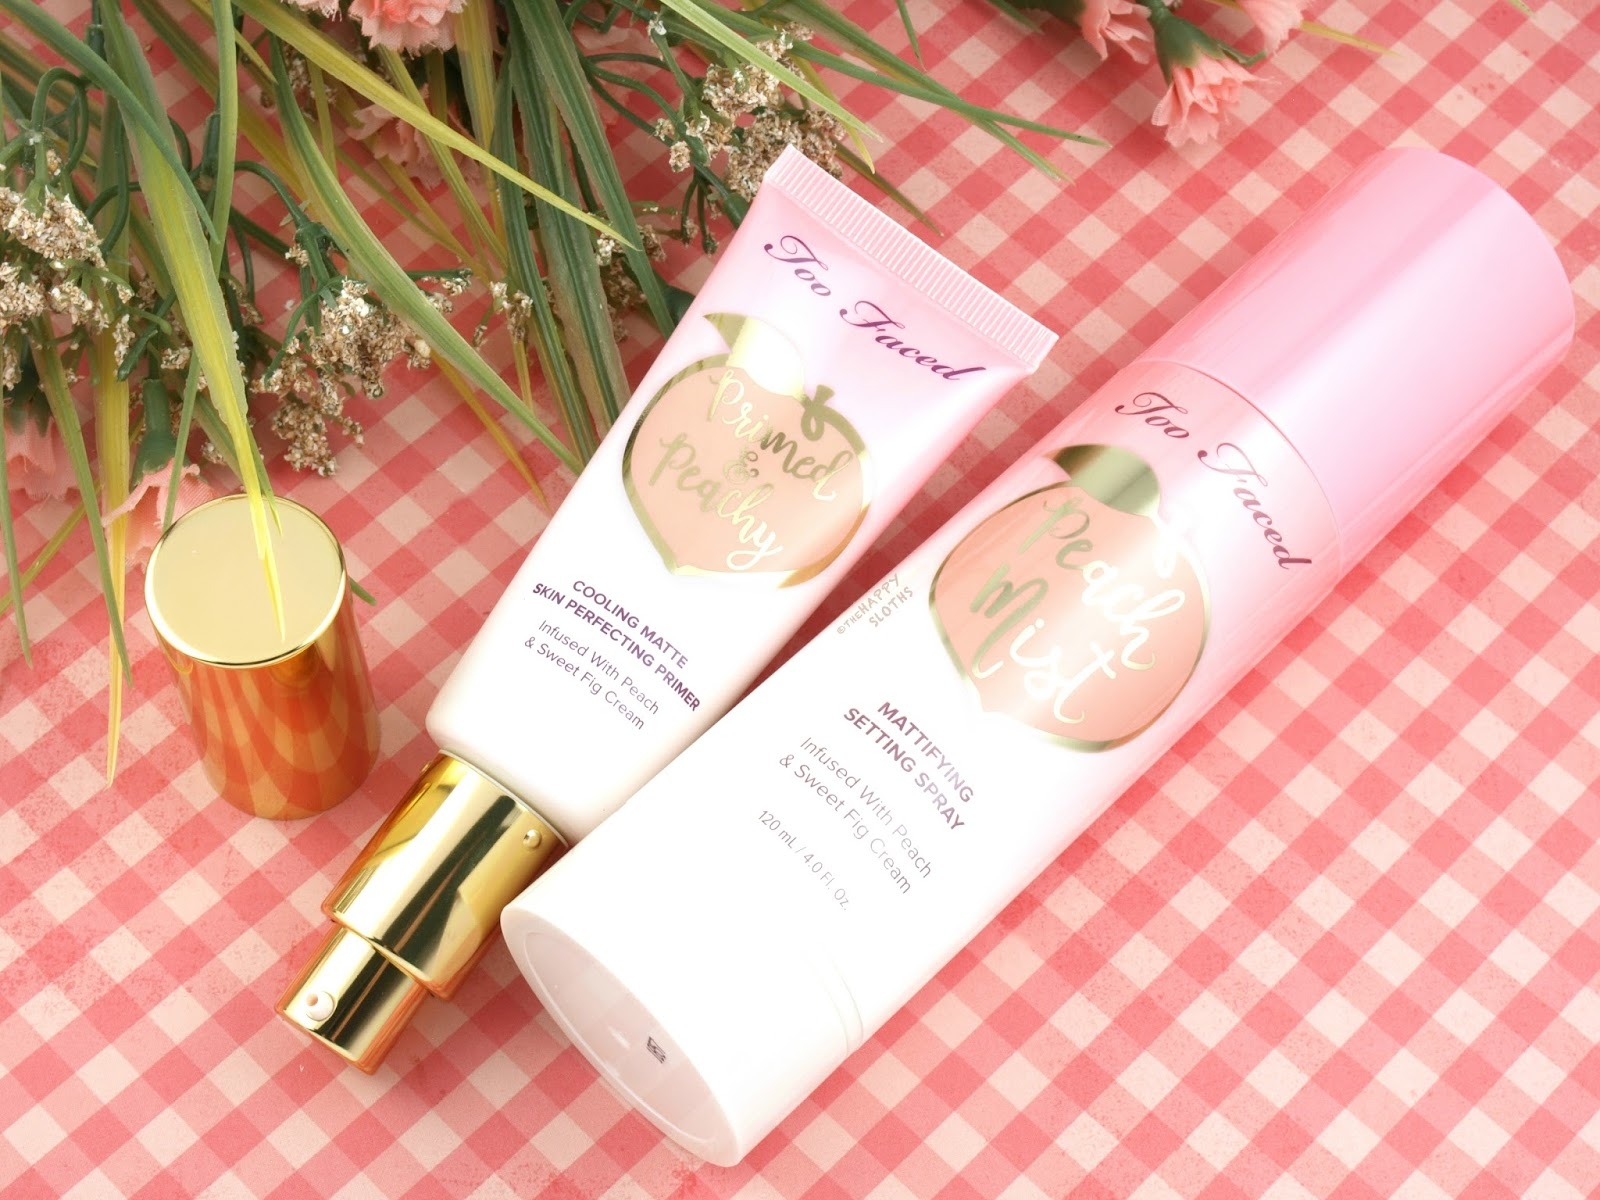 Too Faced Peaches & Cream Collection | Primed & Peachy Primer & Peach Mist Mattifying Setting Spray: Review and Swatches